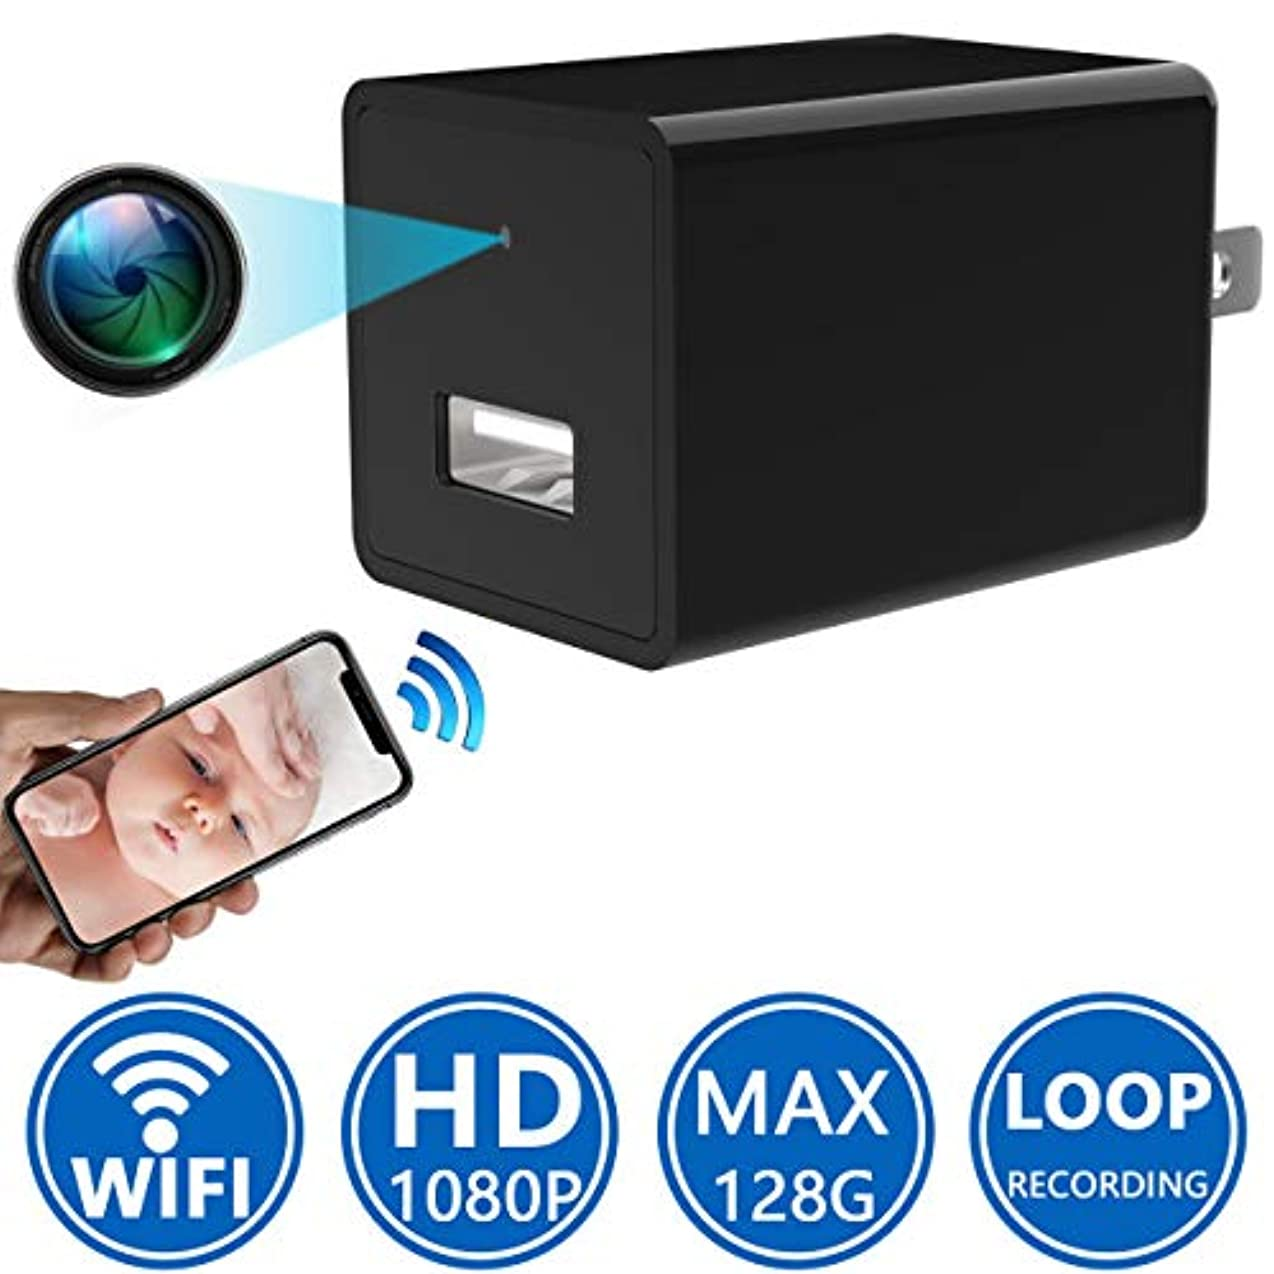 Sunggo Spy Camera Wireless Hidden Wi-Fi Camera,1080P HD Nanny Cameras and Hidden Cameras, USB Spy Camera, Best Hidden Cameras for Home Motion Activated/Night Vision, Support iOS/Android/PC tvmgoltepzfz2251